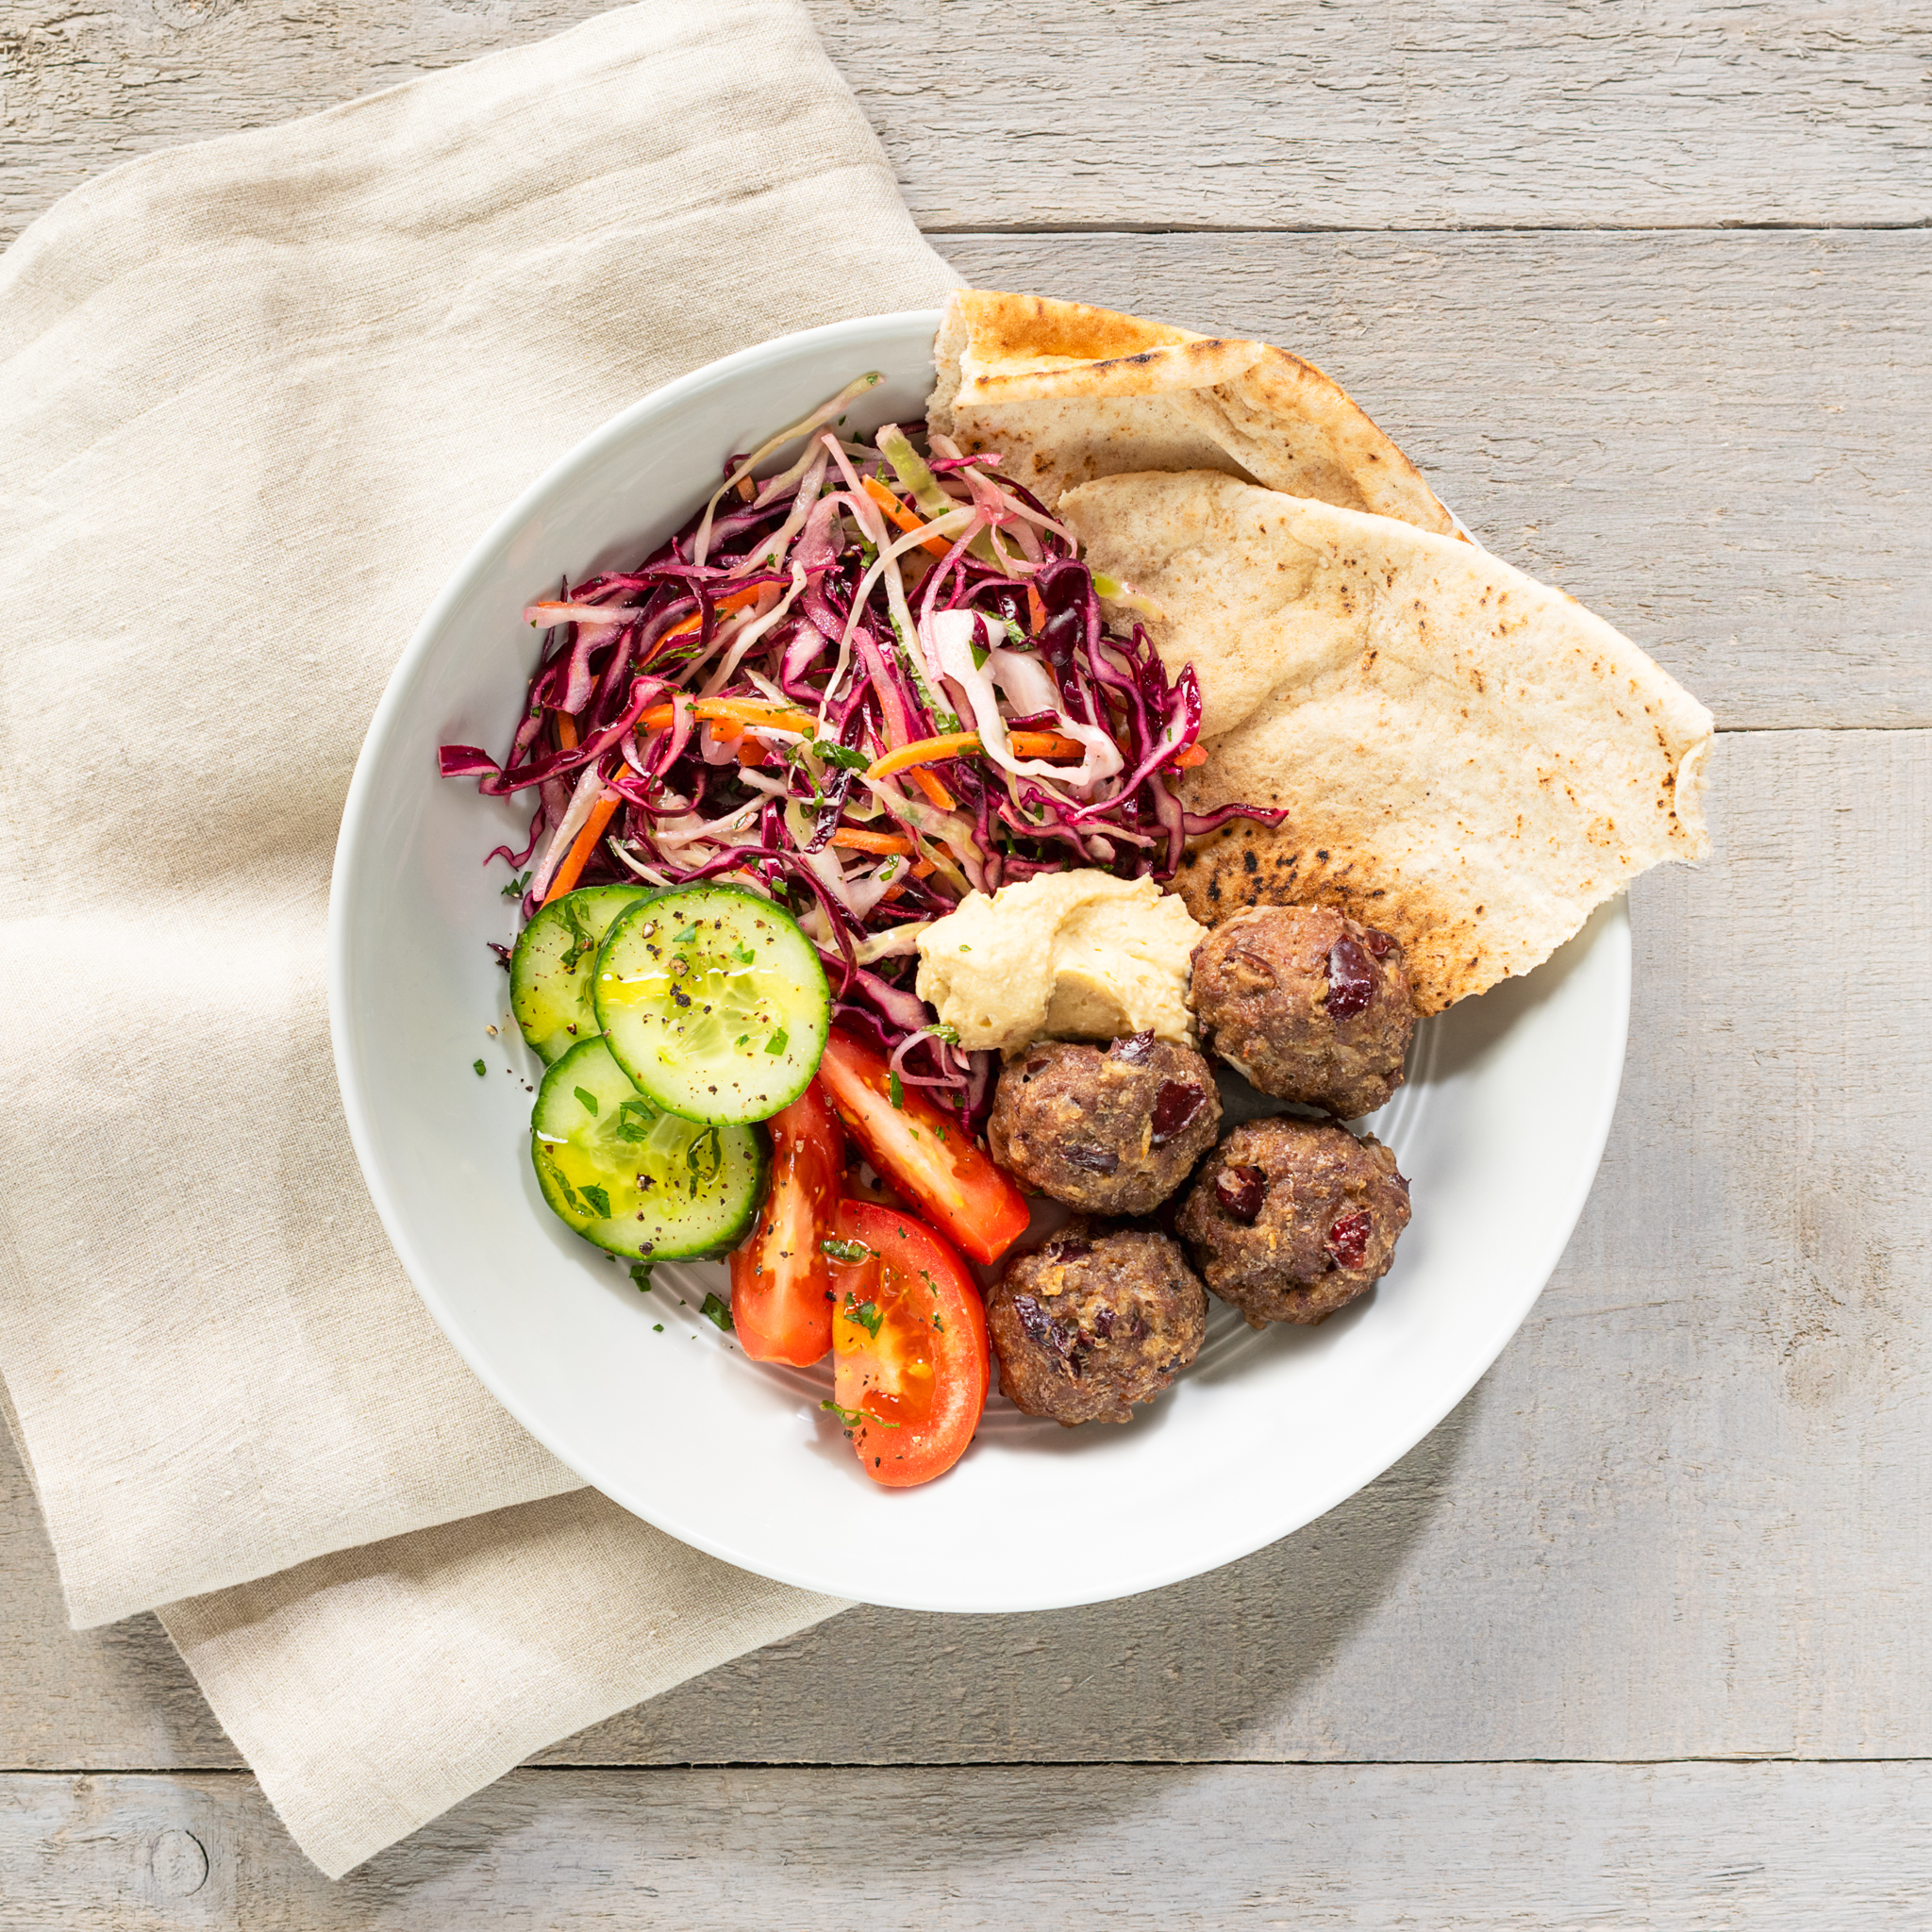 Middle Eastern kidney bean meatballs with herbed slaw